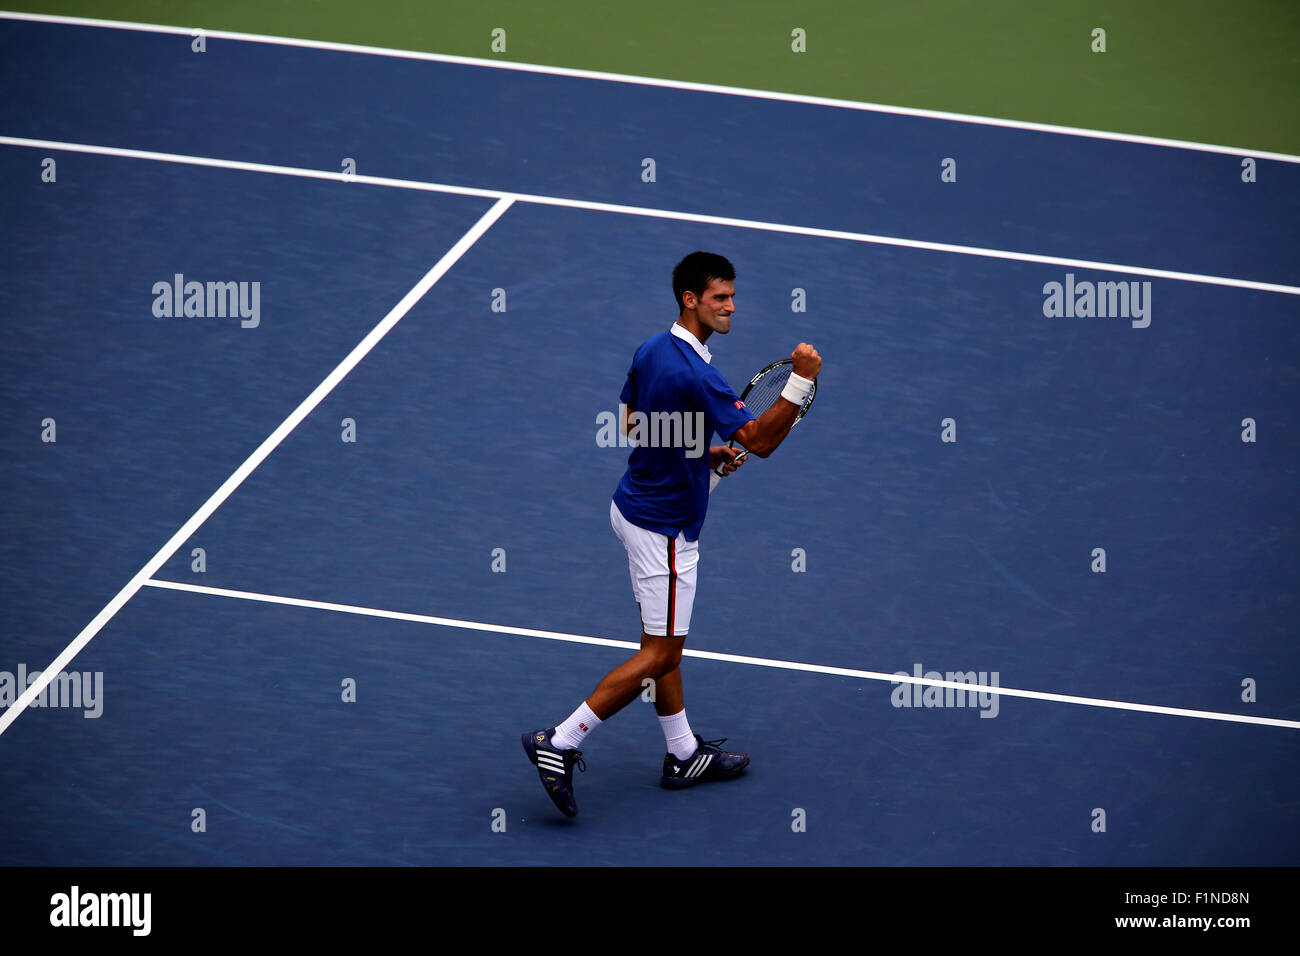 New York, USA. 4th September, 2015. Novak Djokovic reacts after winning a point during his third round match against - Stock Image